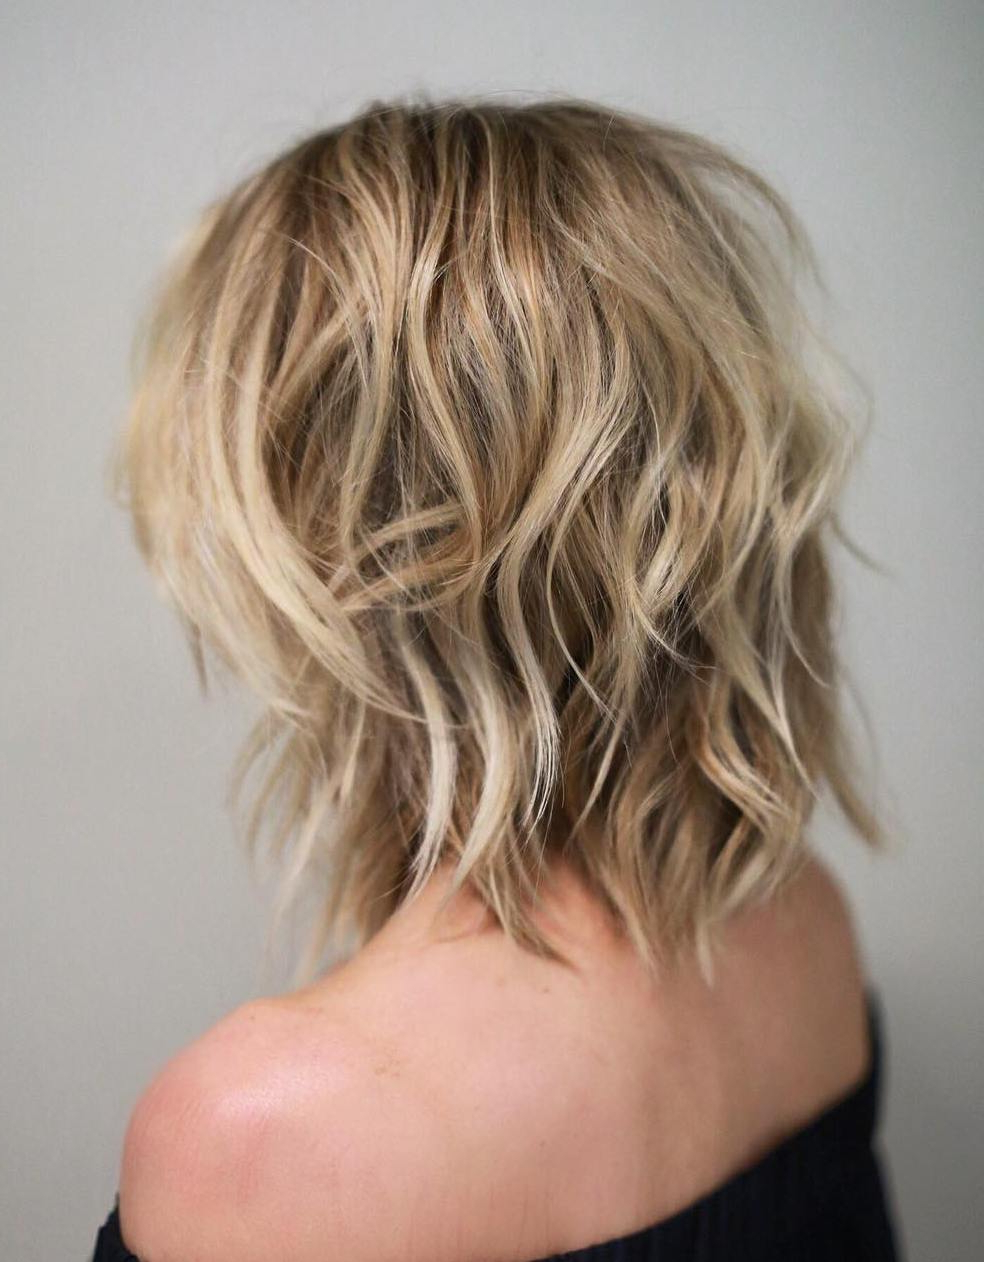 50 Best Variations Of A Medium Shag Haircut For Your Distinctive Style Within Famous Shoulder Length Haircuts With Flicked Ends (View 11 of 20)